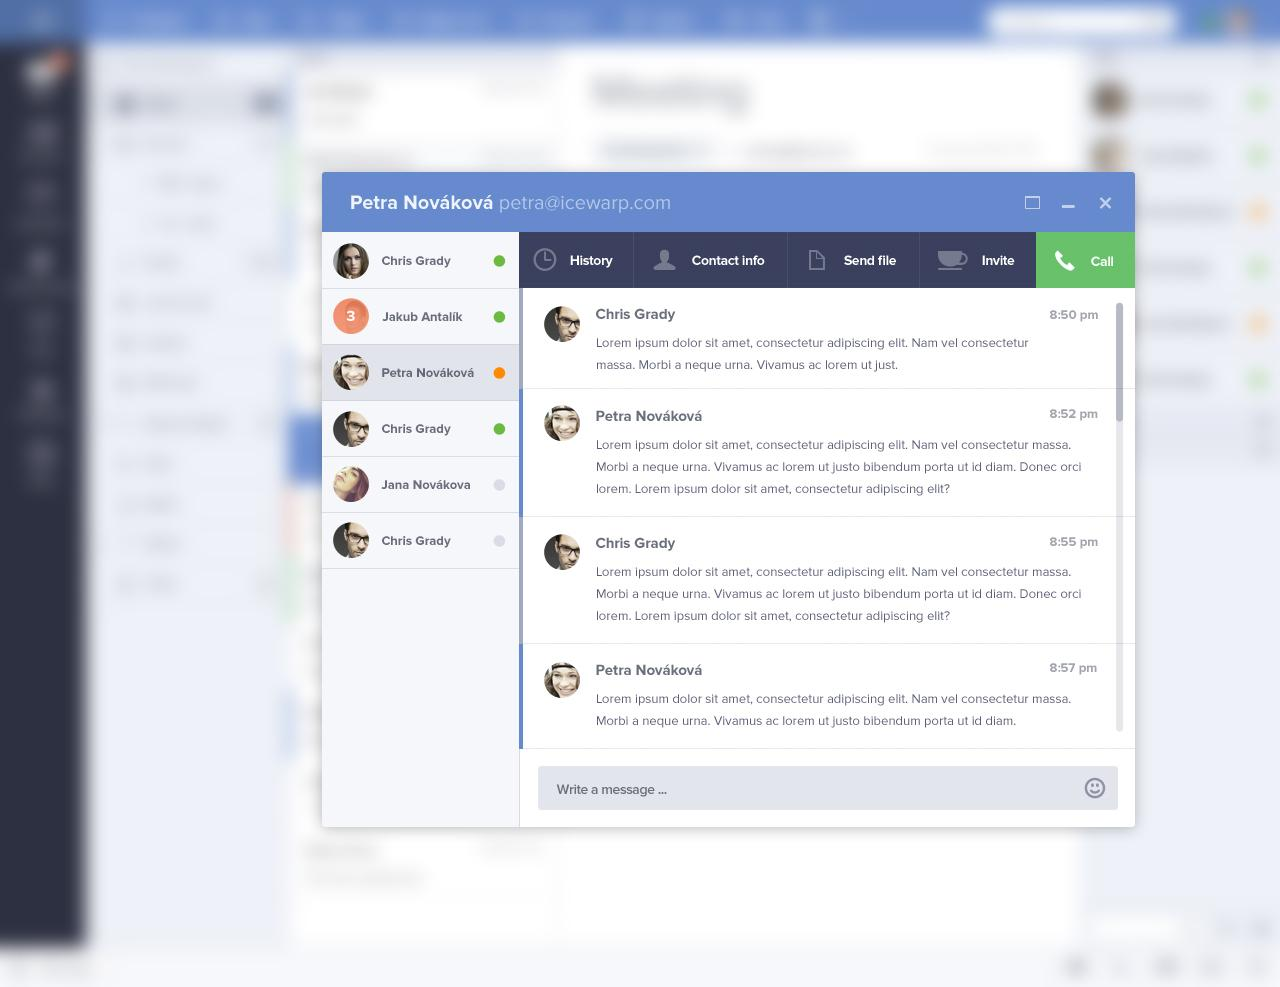 webmail-chat-preview.jpg by Jakub Antalík